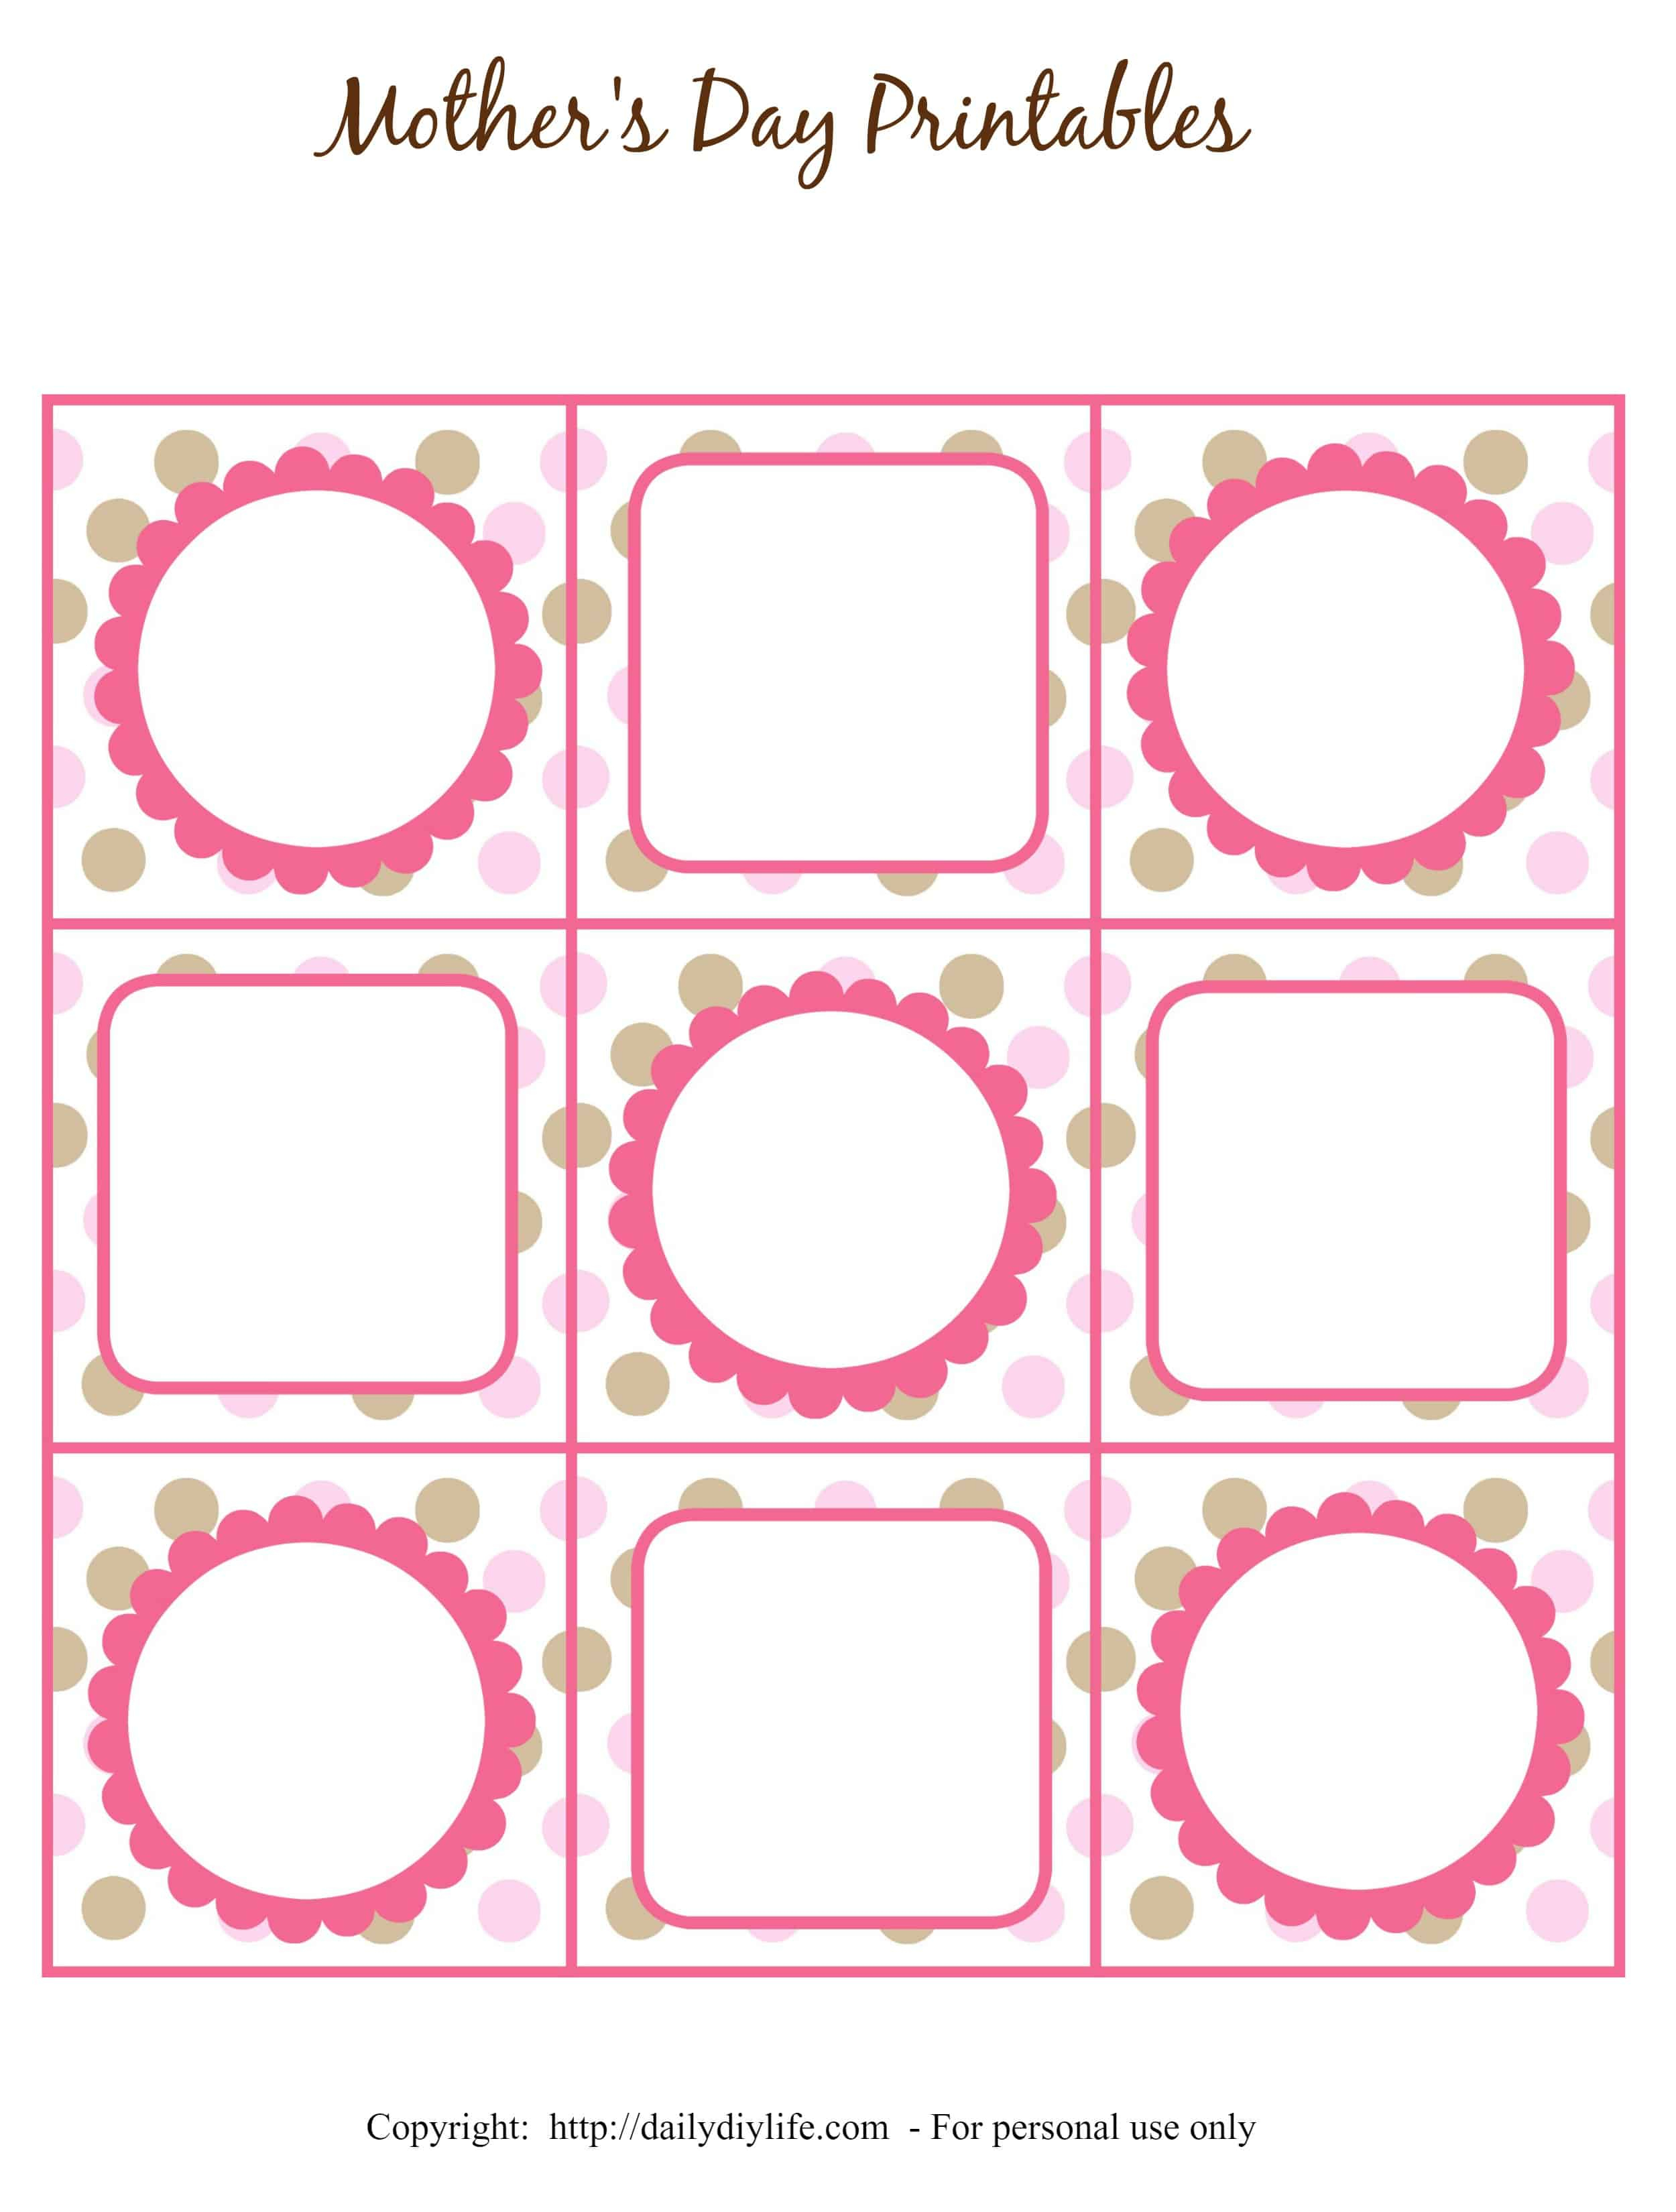 Mother's Day Free Printable Gift Tags Or Cupcake Toppers - Free Printable Blank Gift Tags